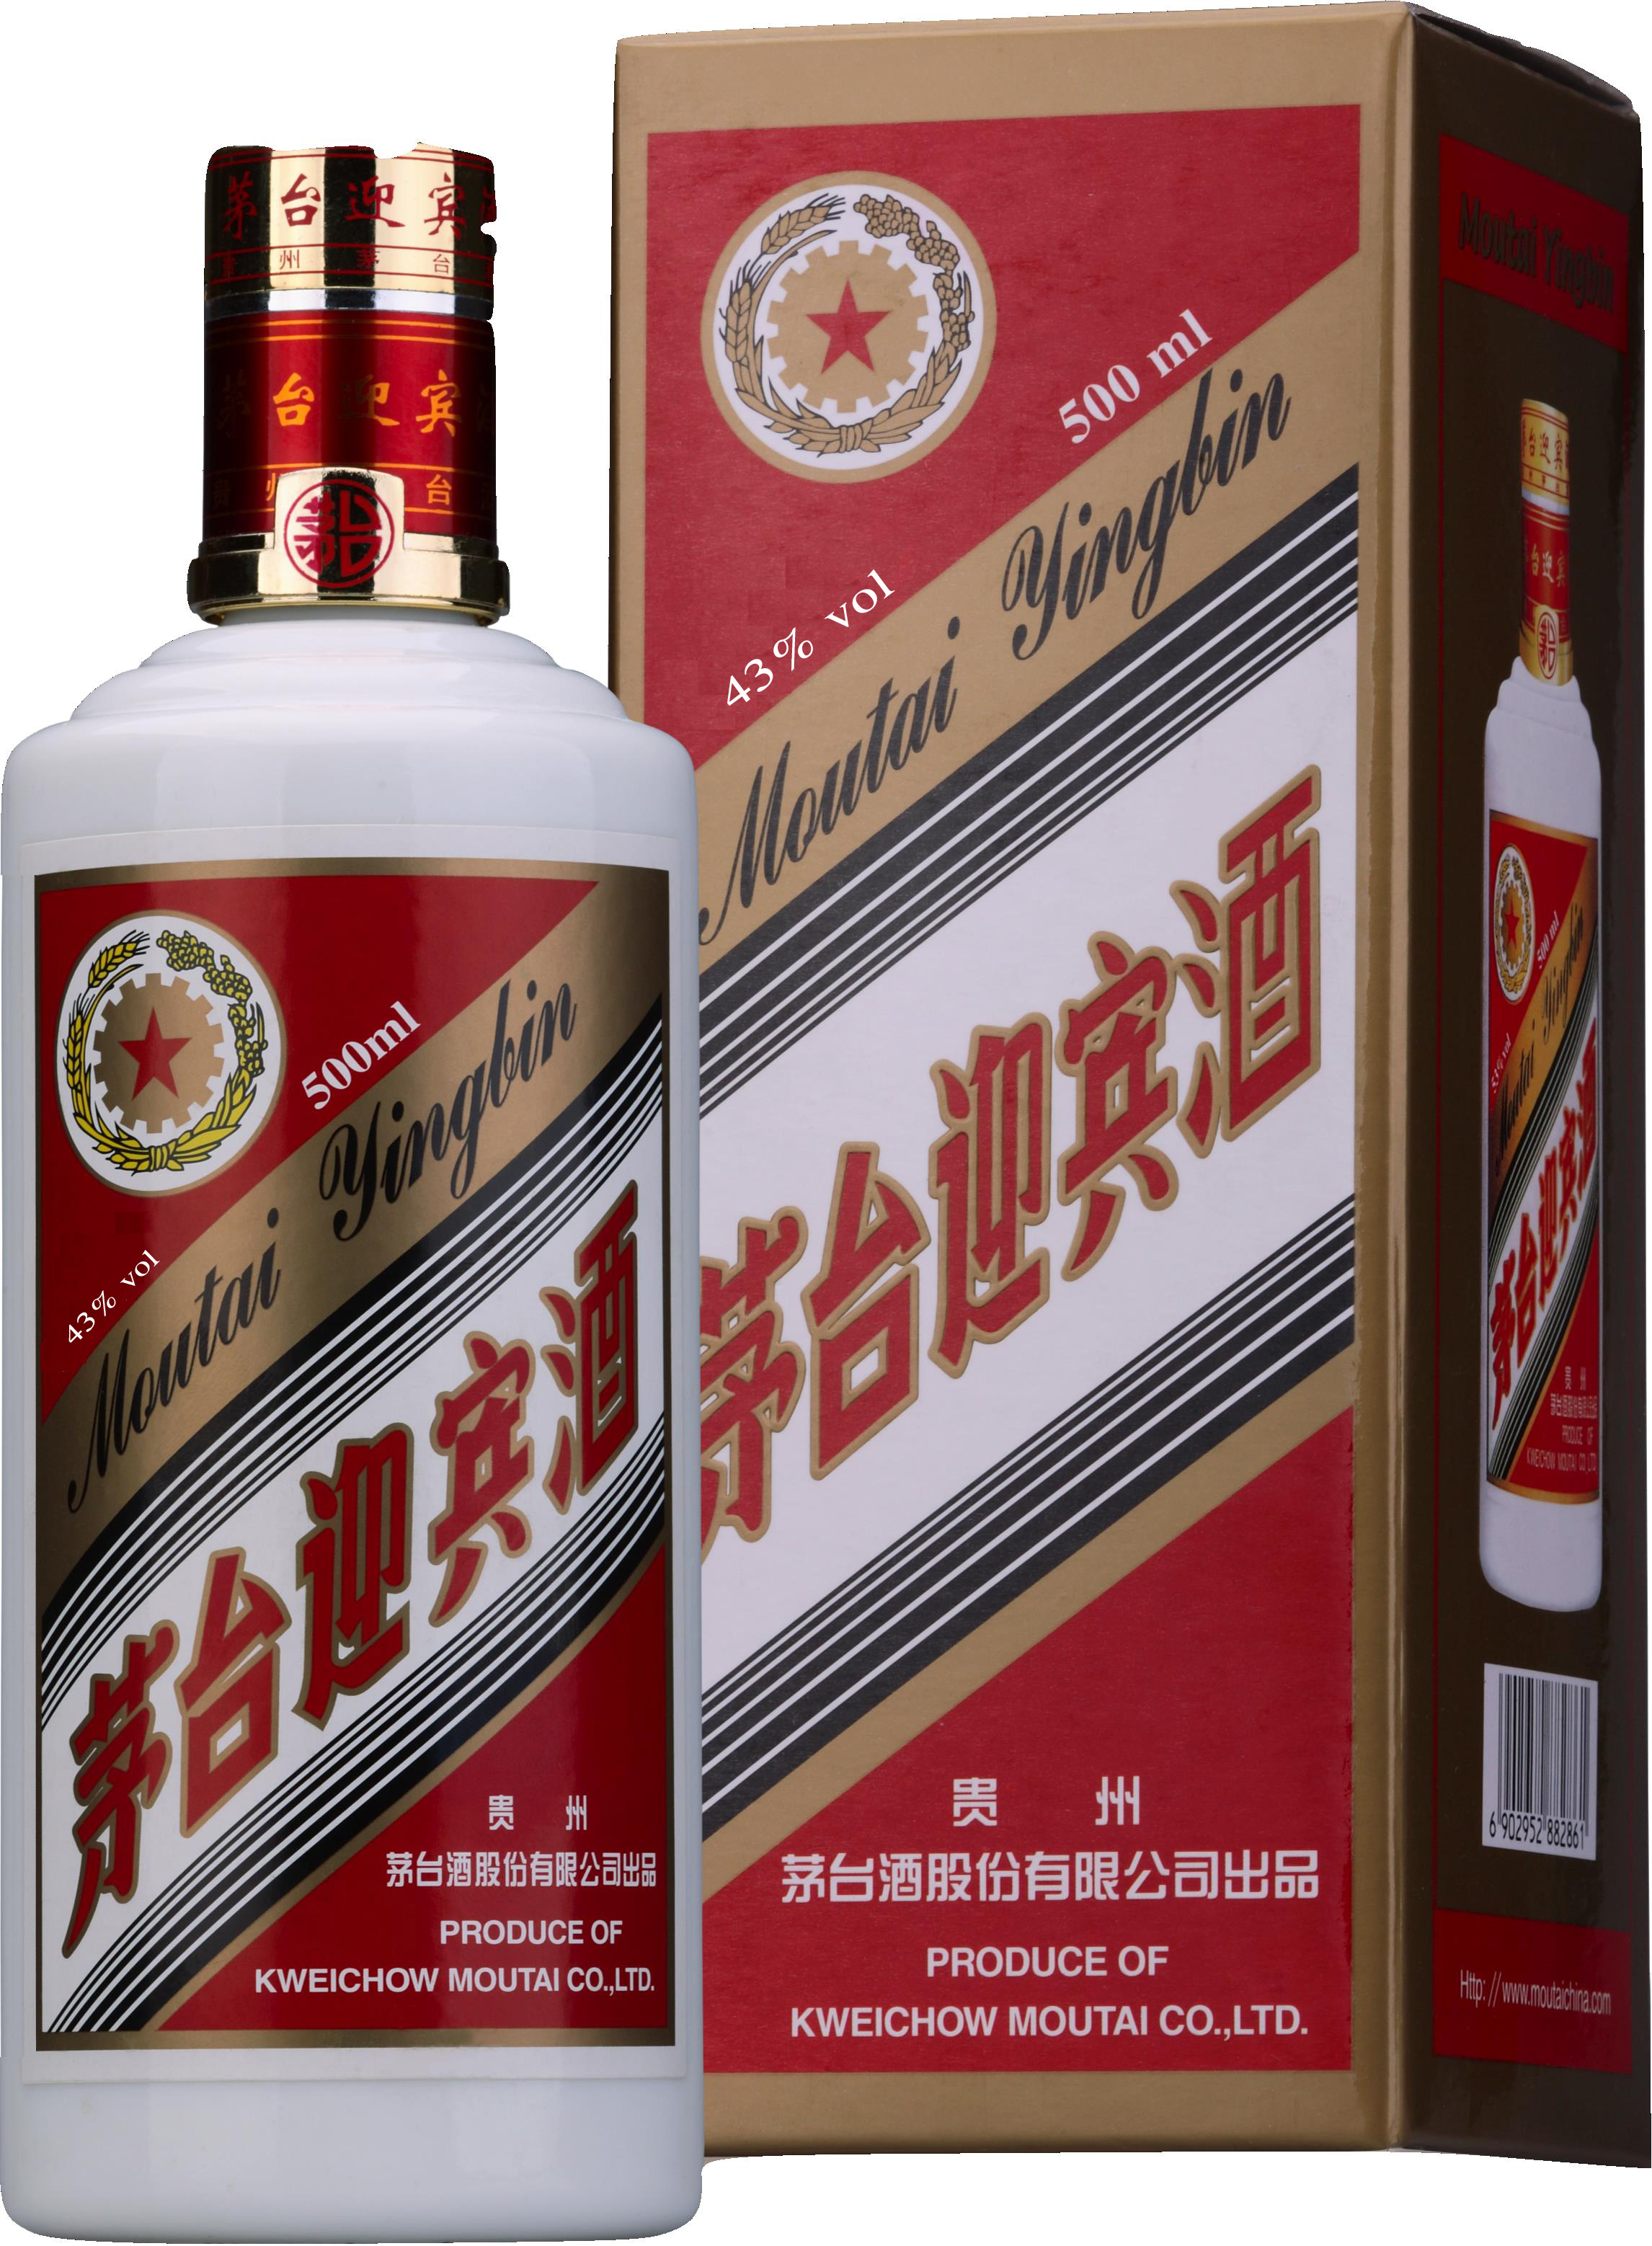 Moutai Yingbin Chiew LCBO498030 43 alc Vintages